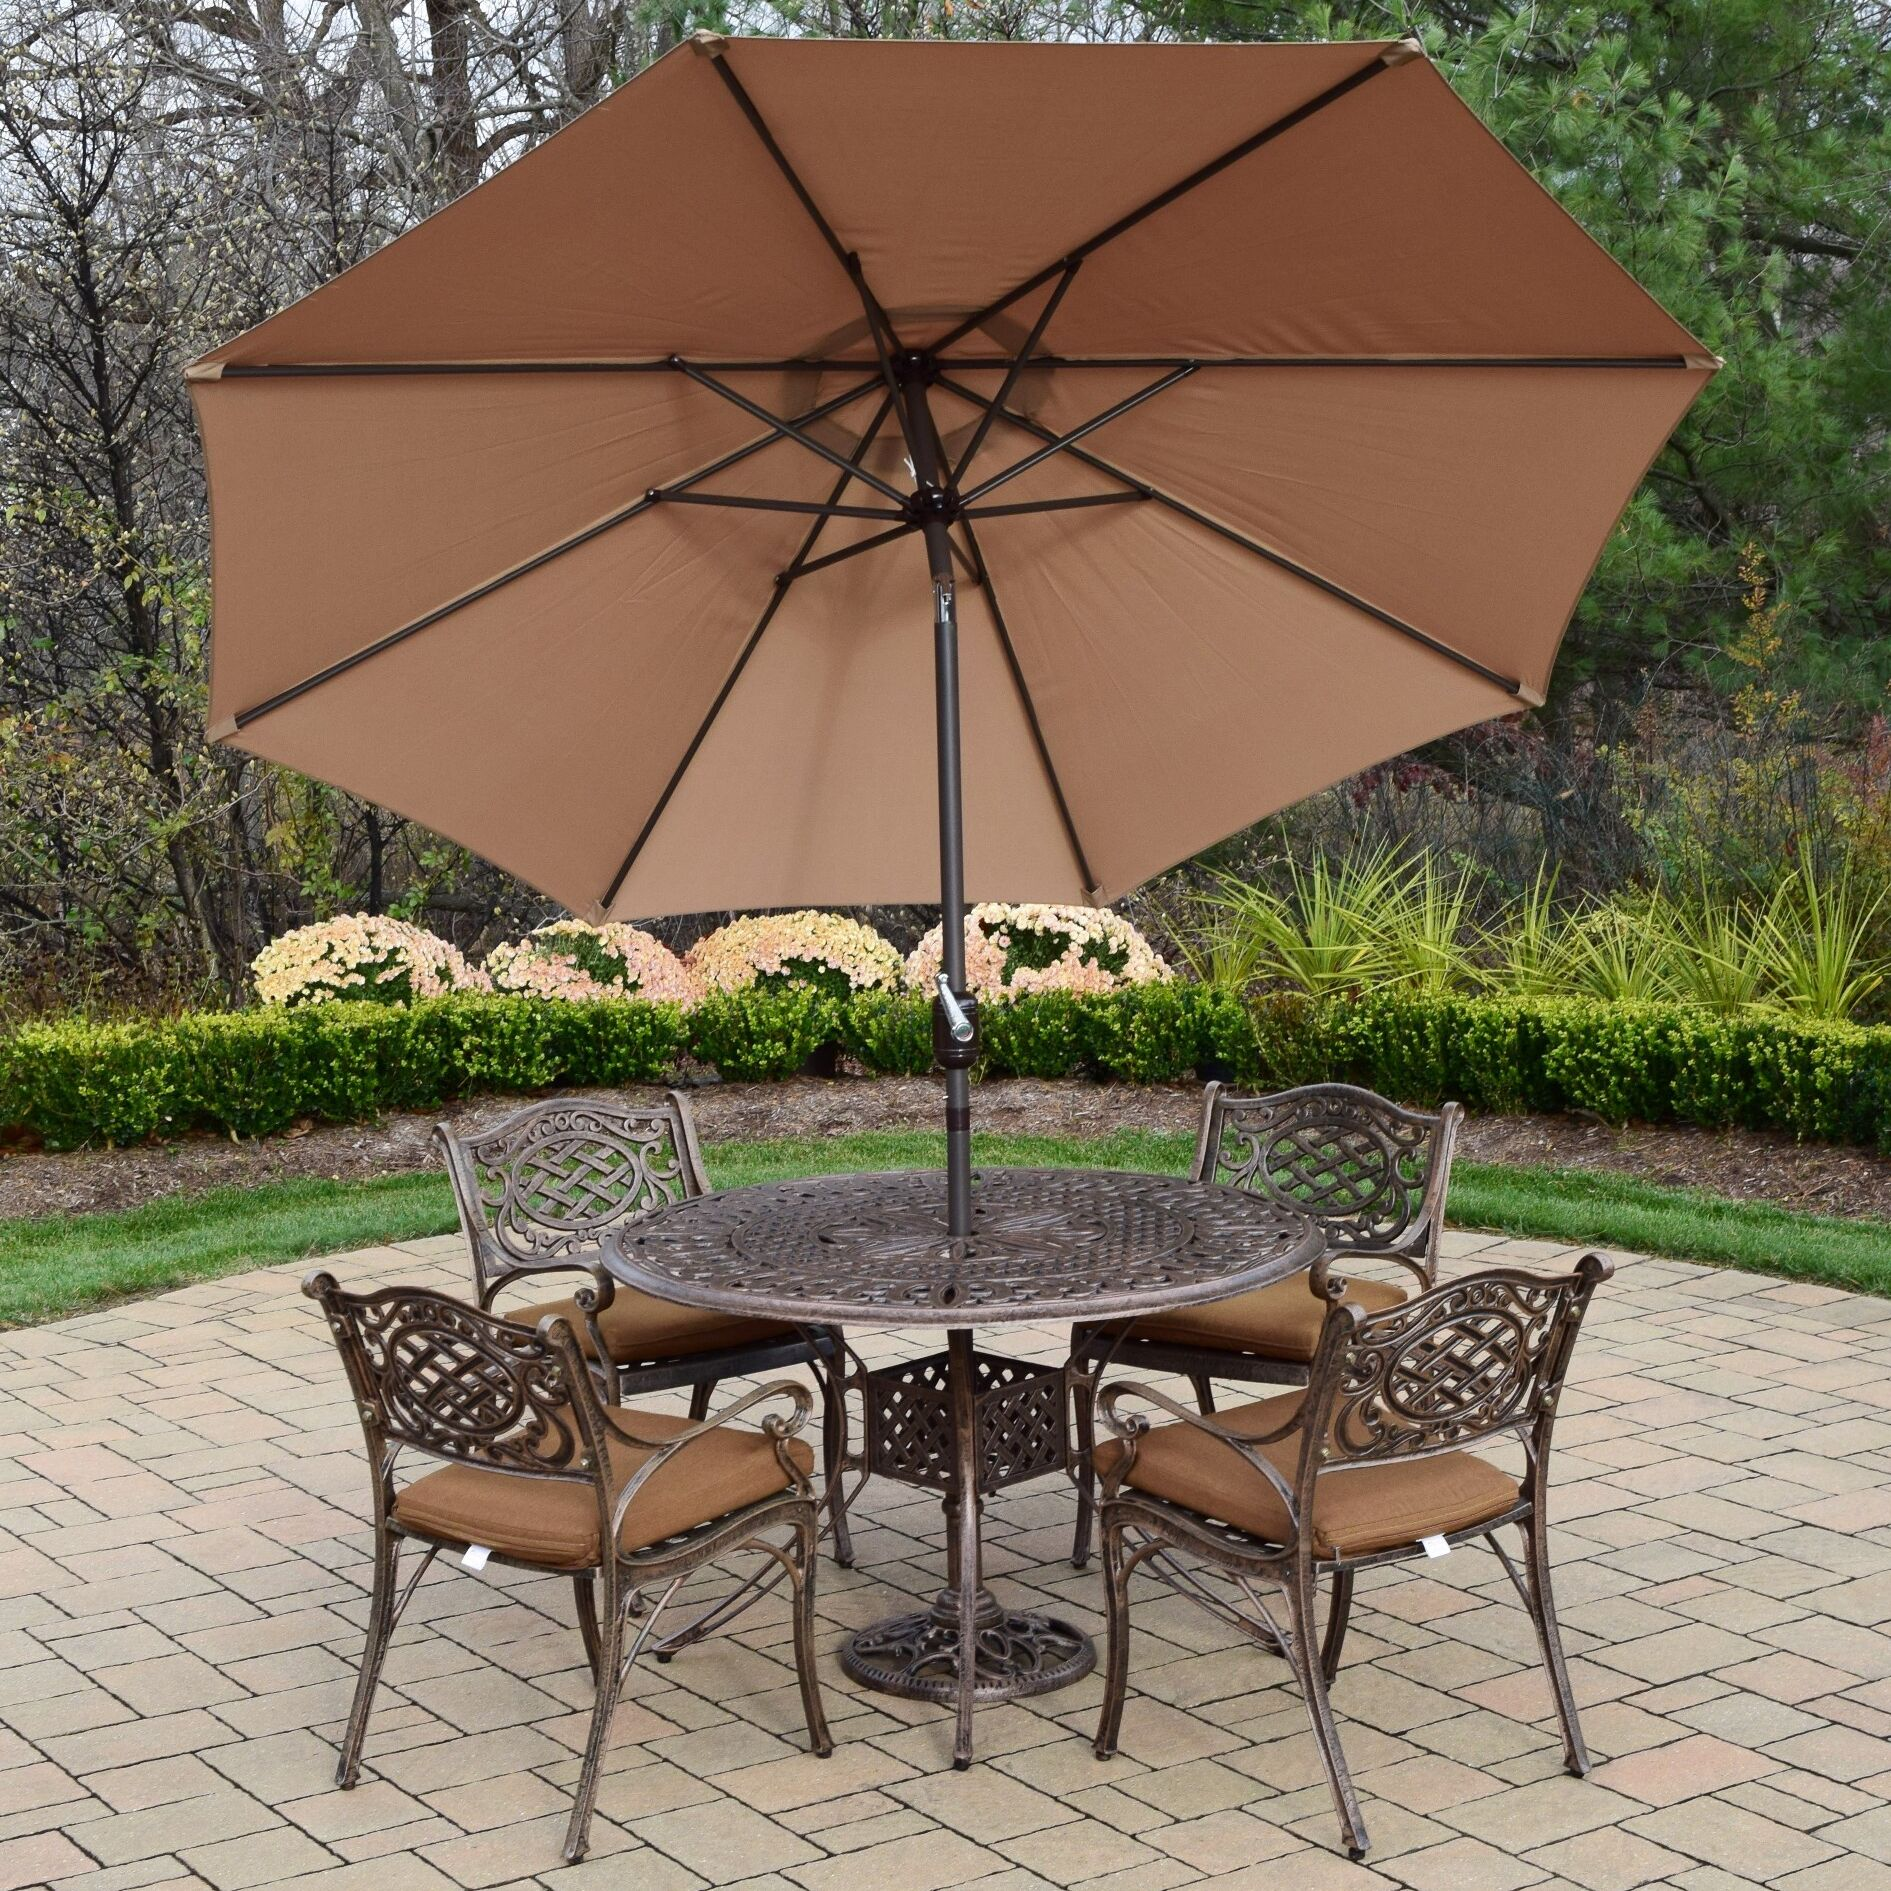 Capitol 5 Piece Dining Set with Cushions Umbrella Color: Champagne, Cushion Fabric: Sunbrella - Tan